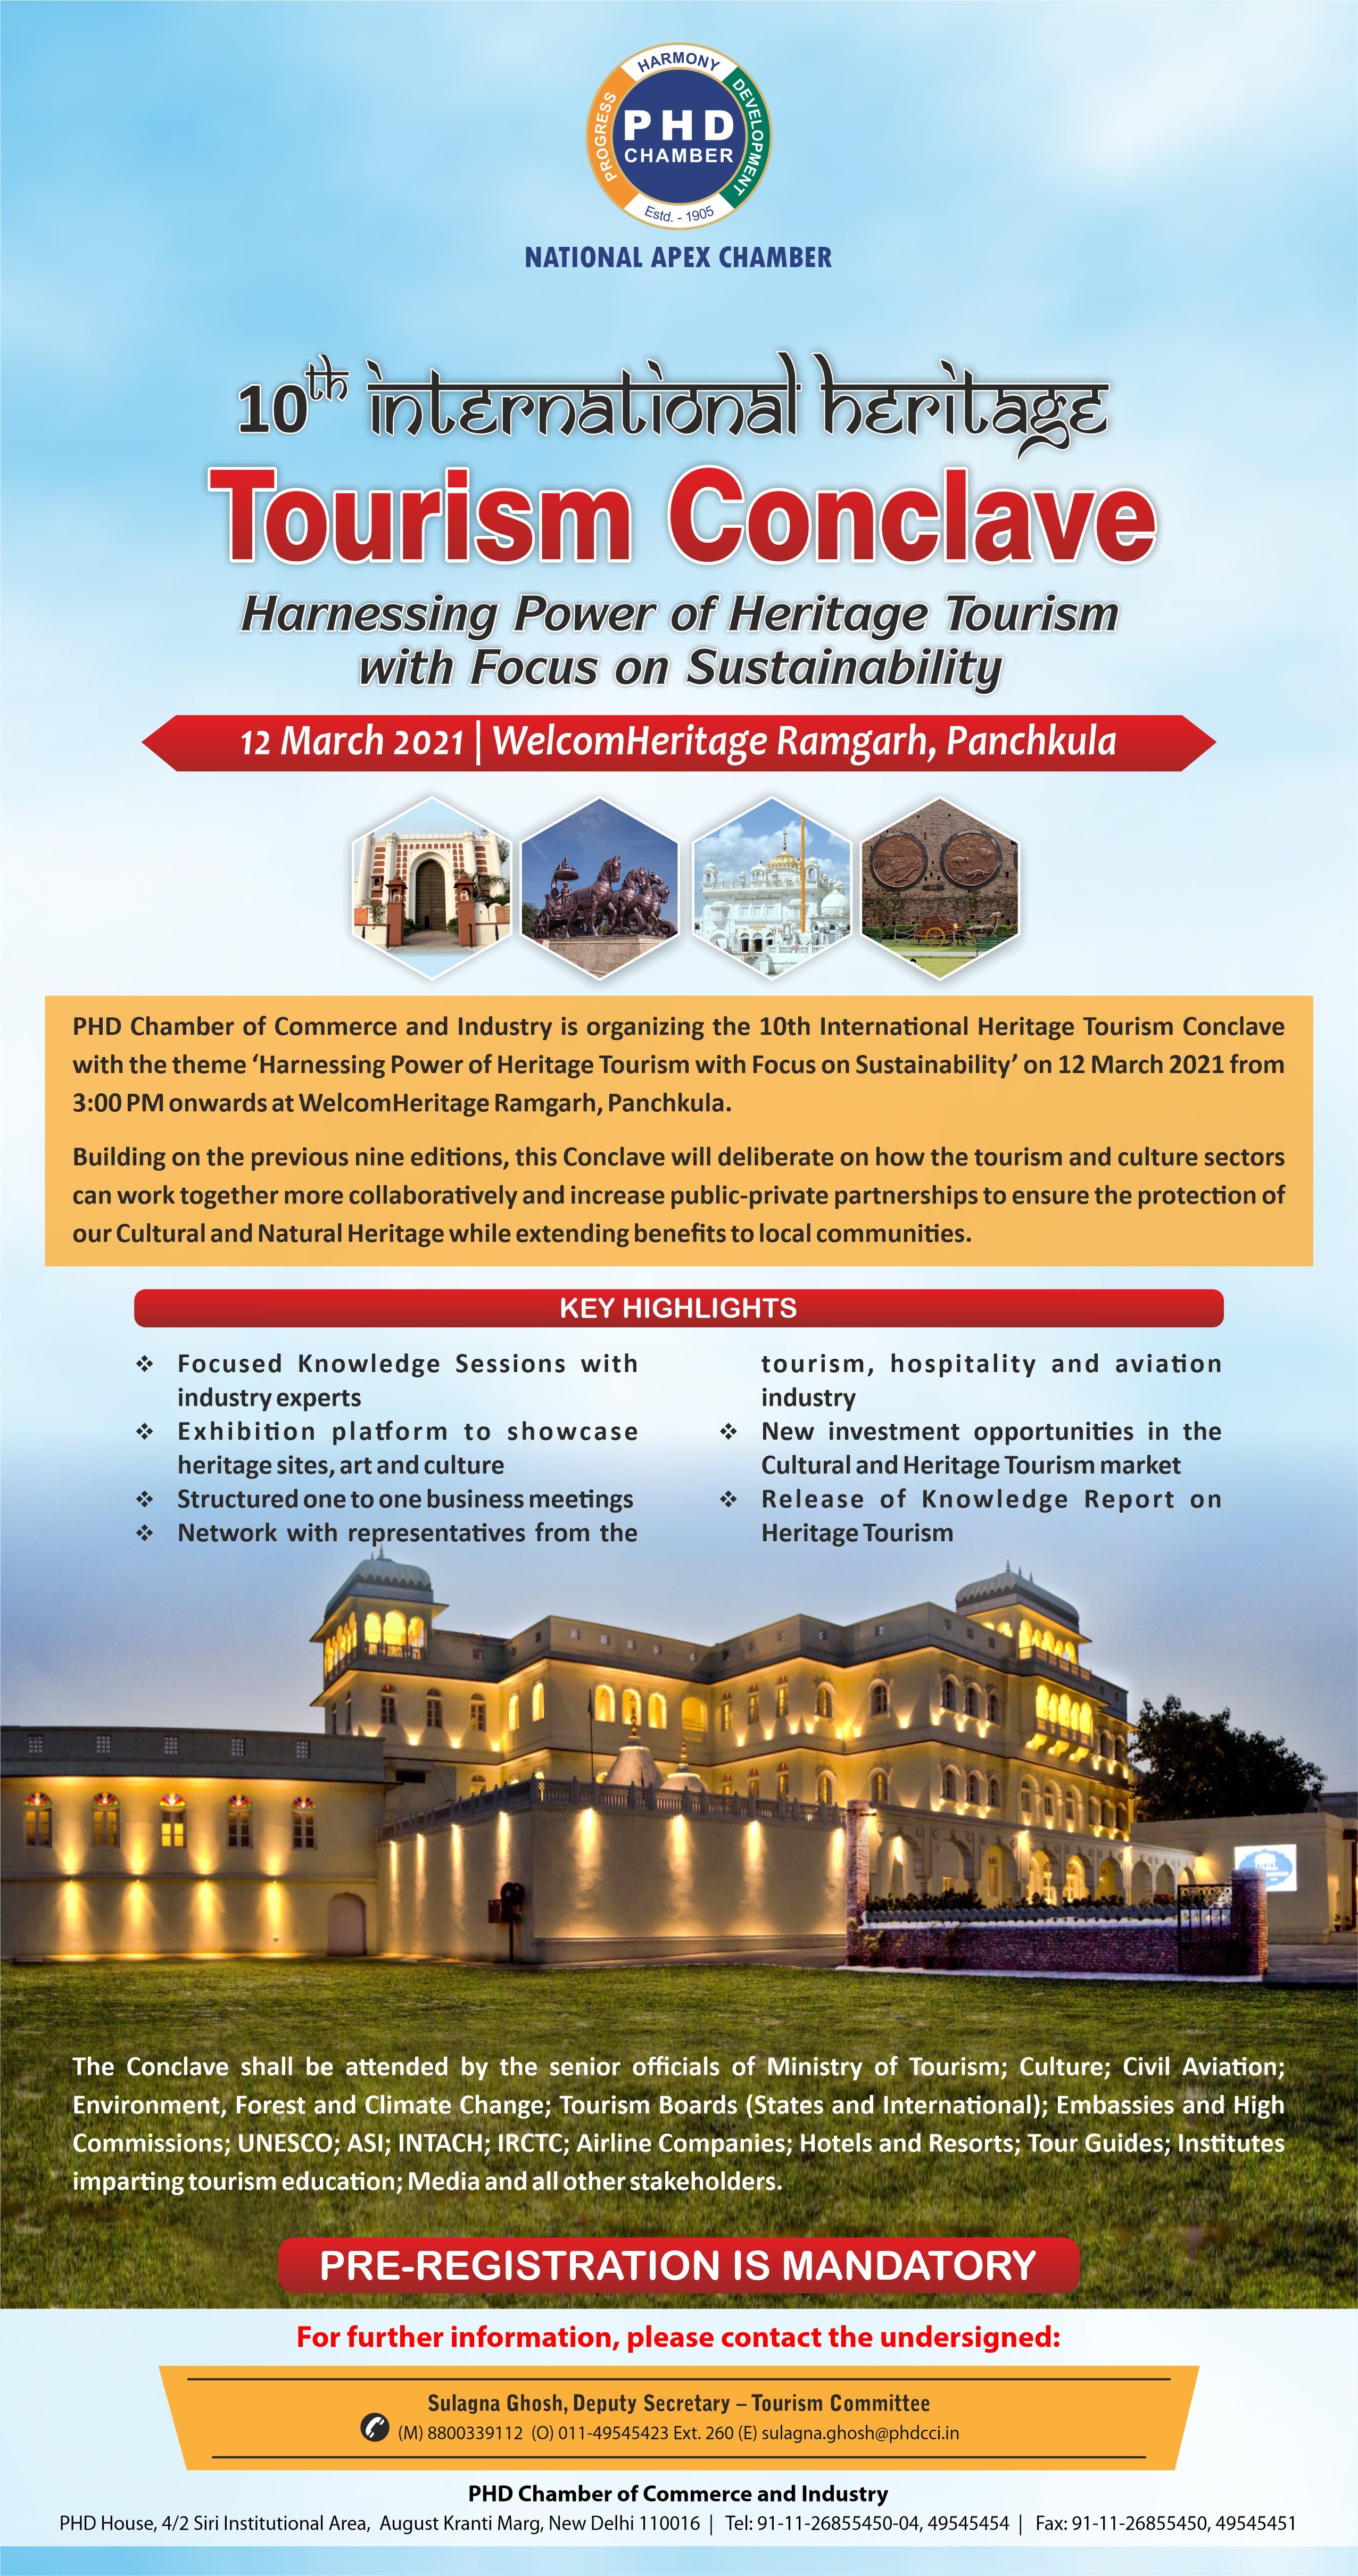 10th International Heritage Tourism Conclave